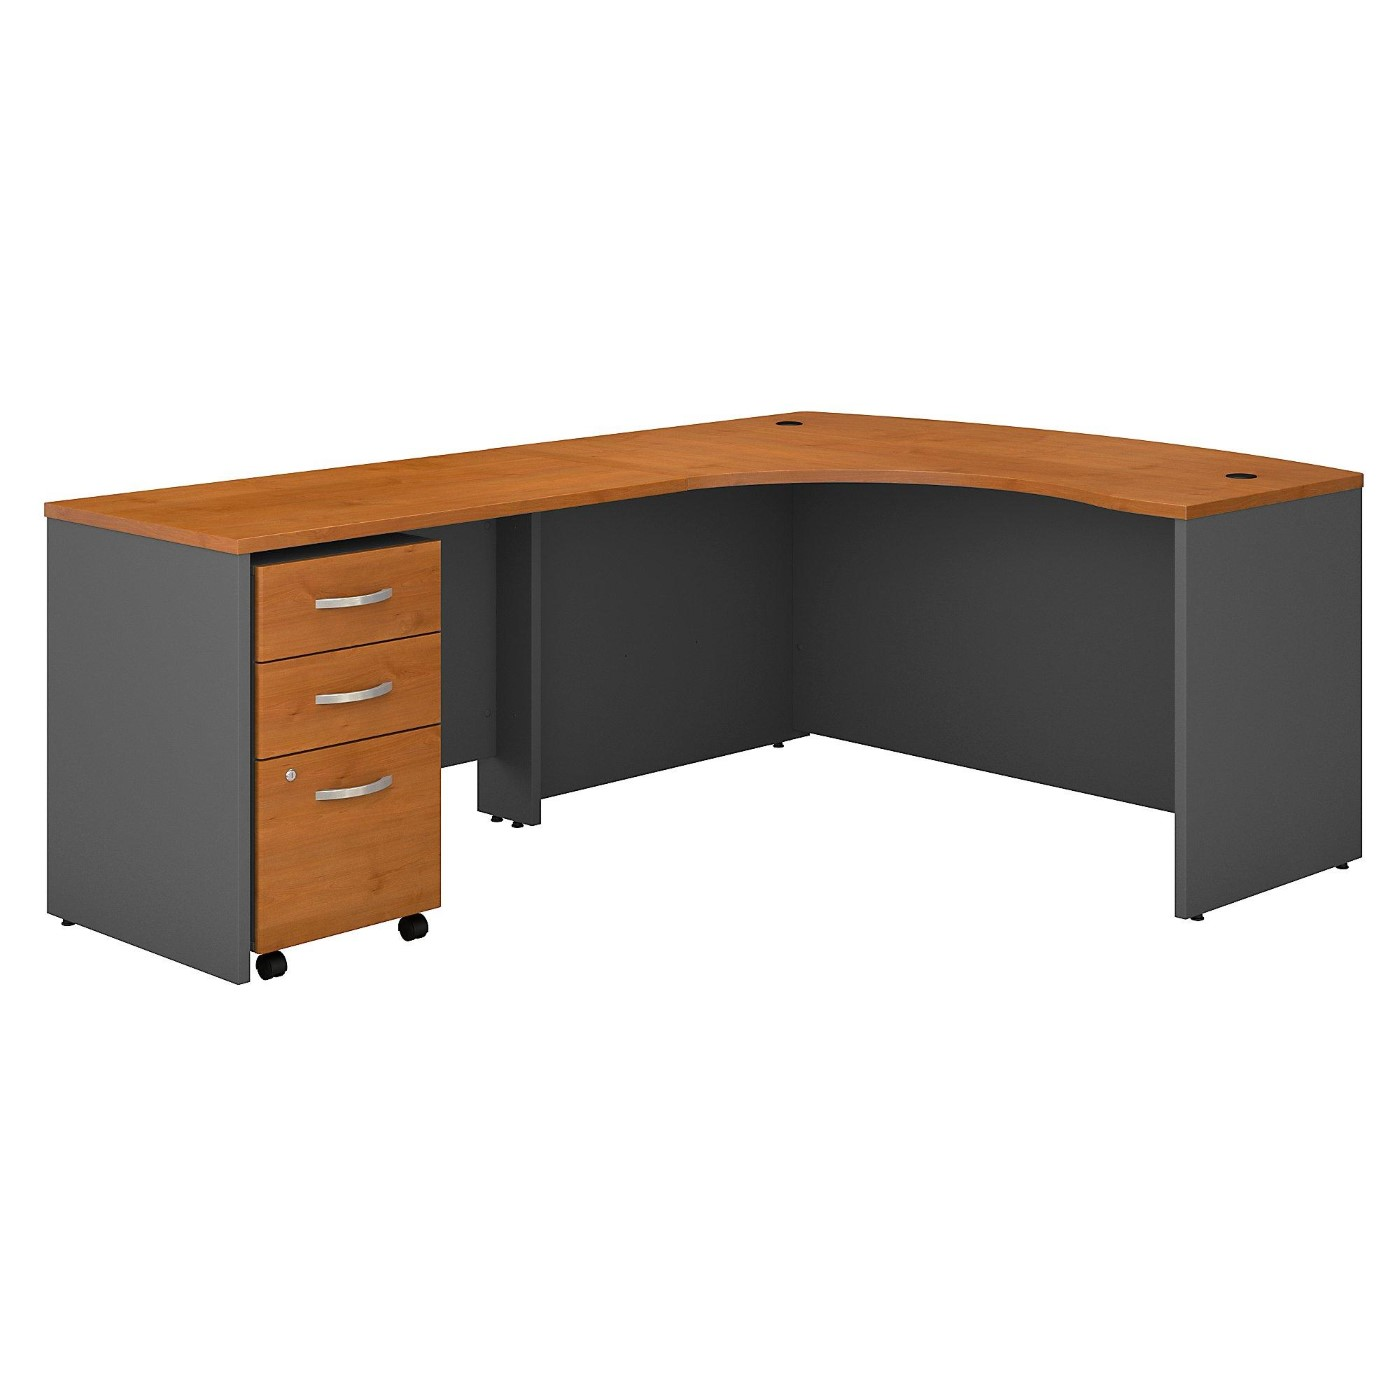 BUSH BUSINESS FURNITURE SERIES C RIGHT HANDED L SHAPED DESK WITH MOBILE FILE CABINET. FREE SHIPPING</font></b></font></b>&#x1F384<font color=red><b>ERGONOMICHOME HOLIDAY SALE - ENDS DEC. 17, 2019</b></font>&#x1F384